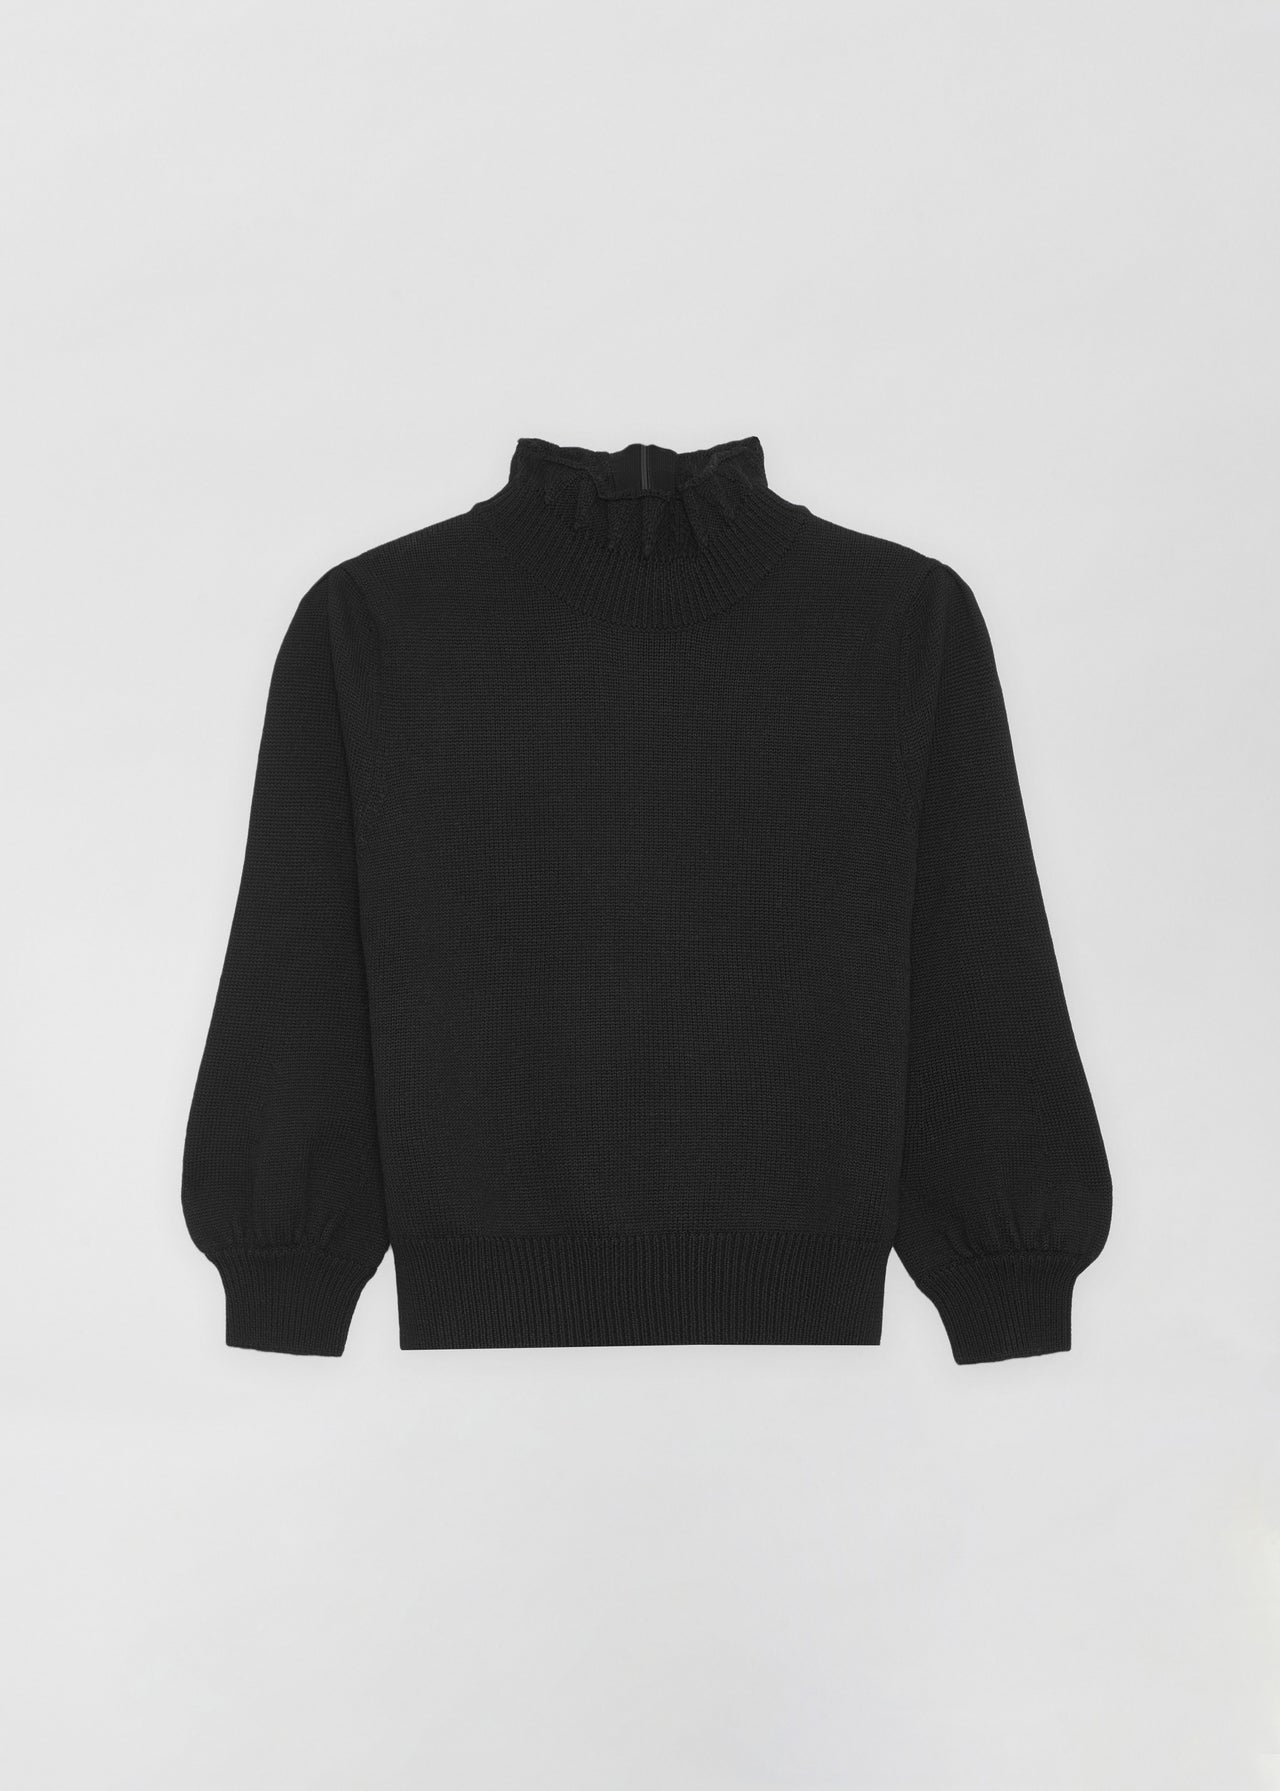 Ruffled Merino Wool Turtleneck - CO Collections